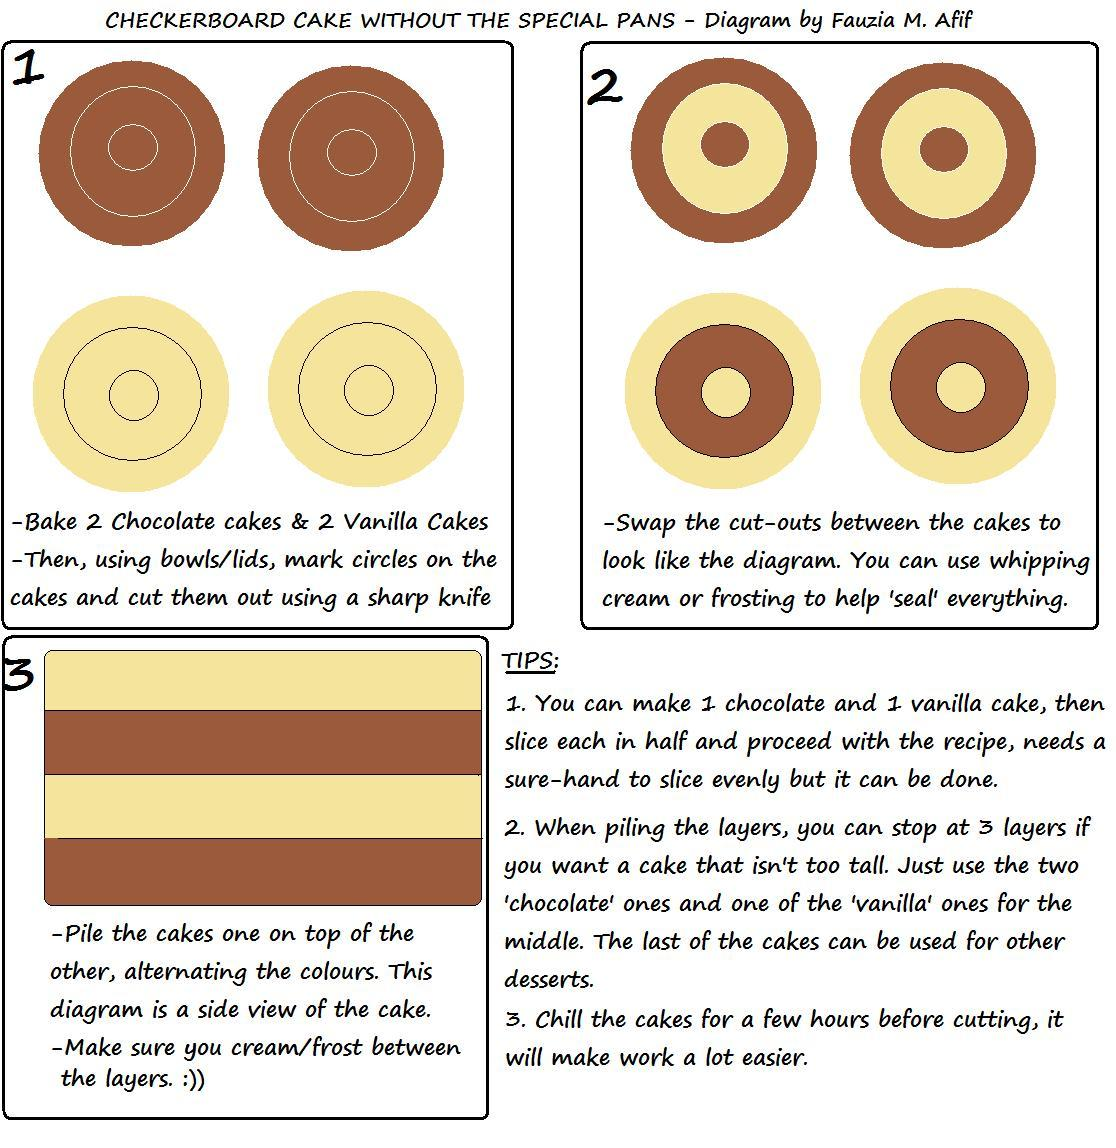 How To Assemble A Checkerboard Cake Without The Special Pans Fauzia S Kitchen Fun